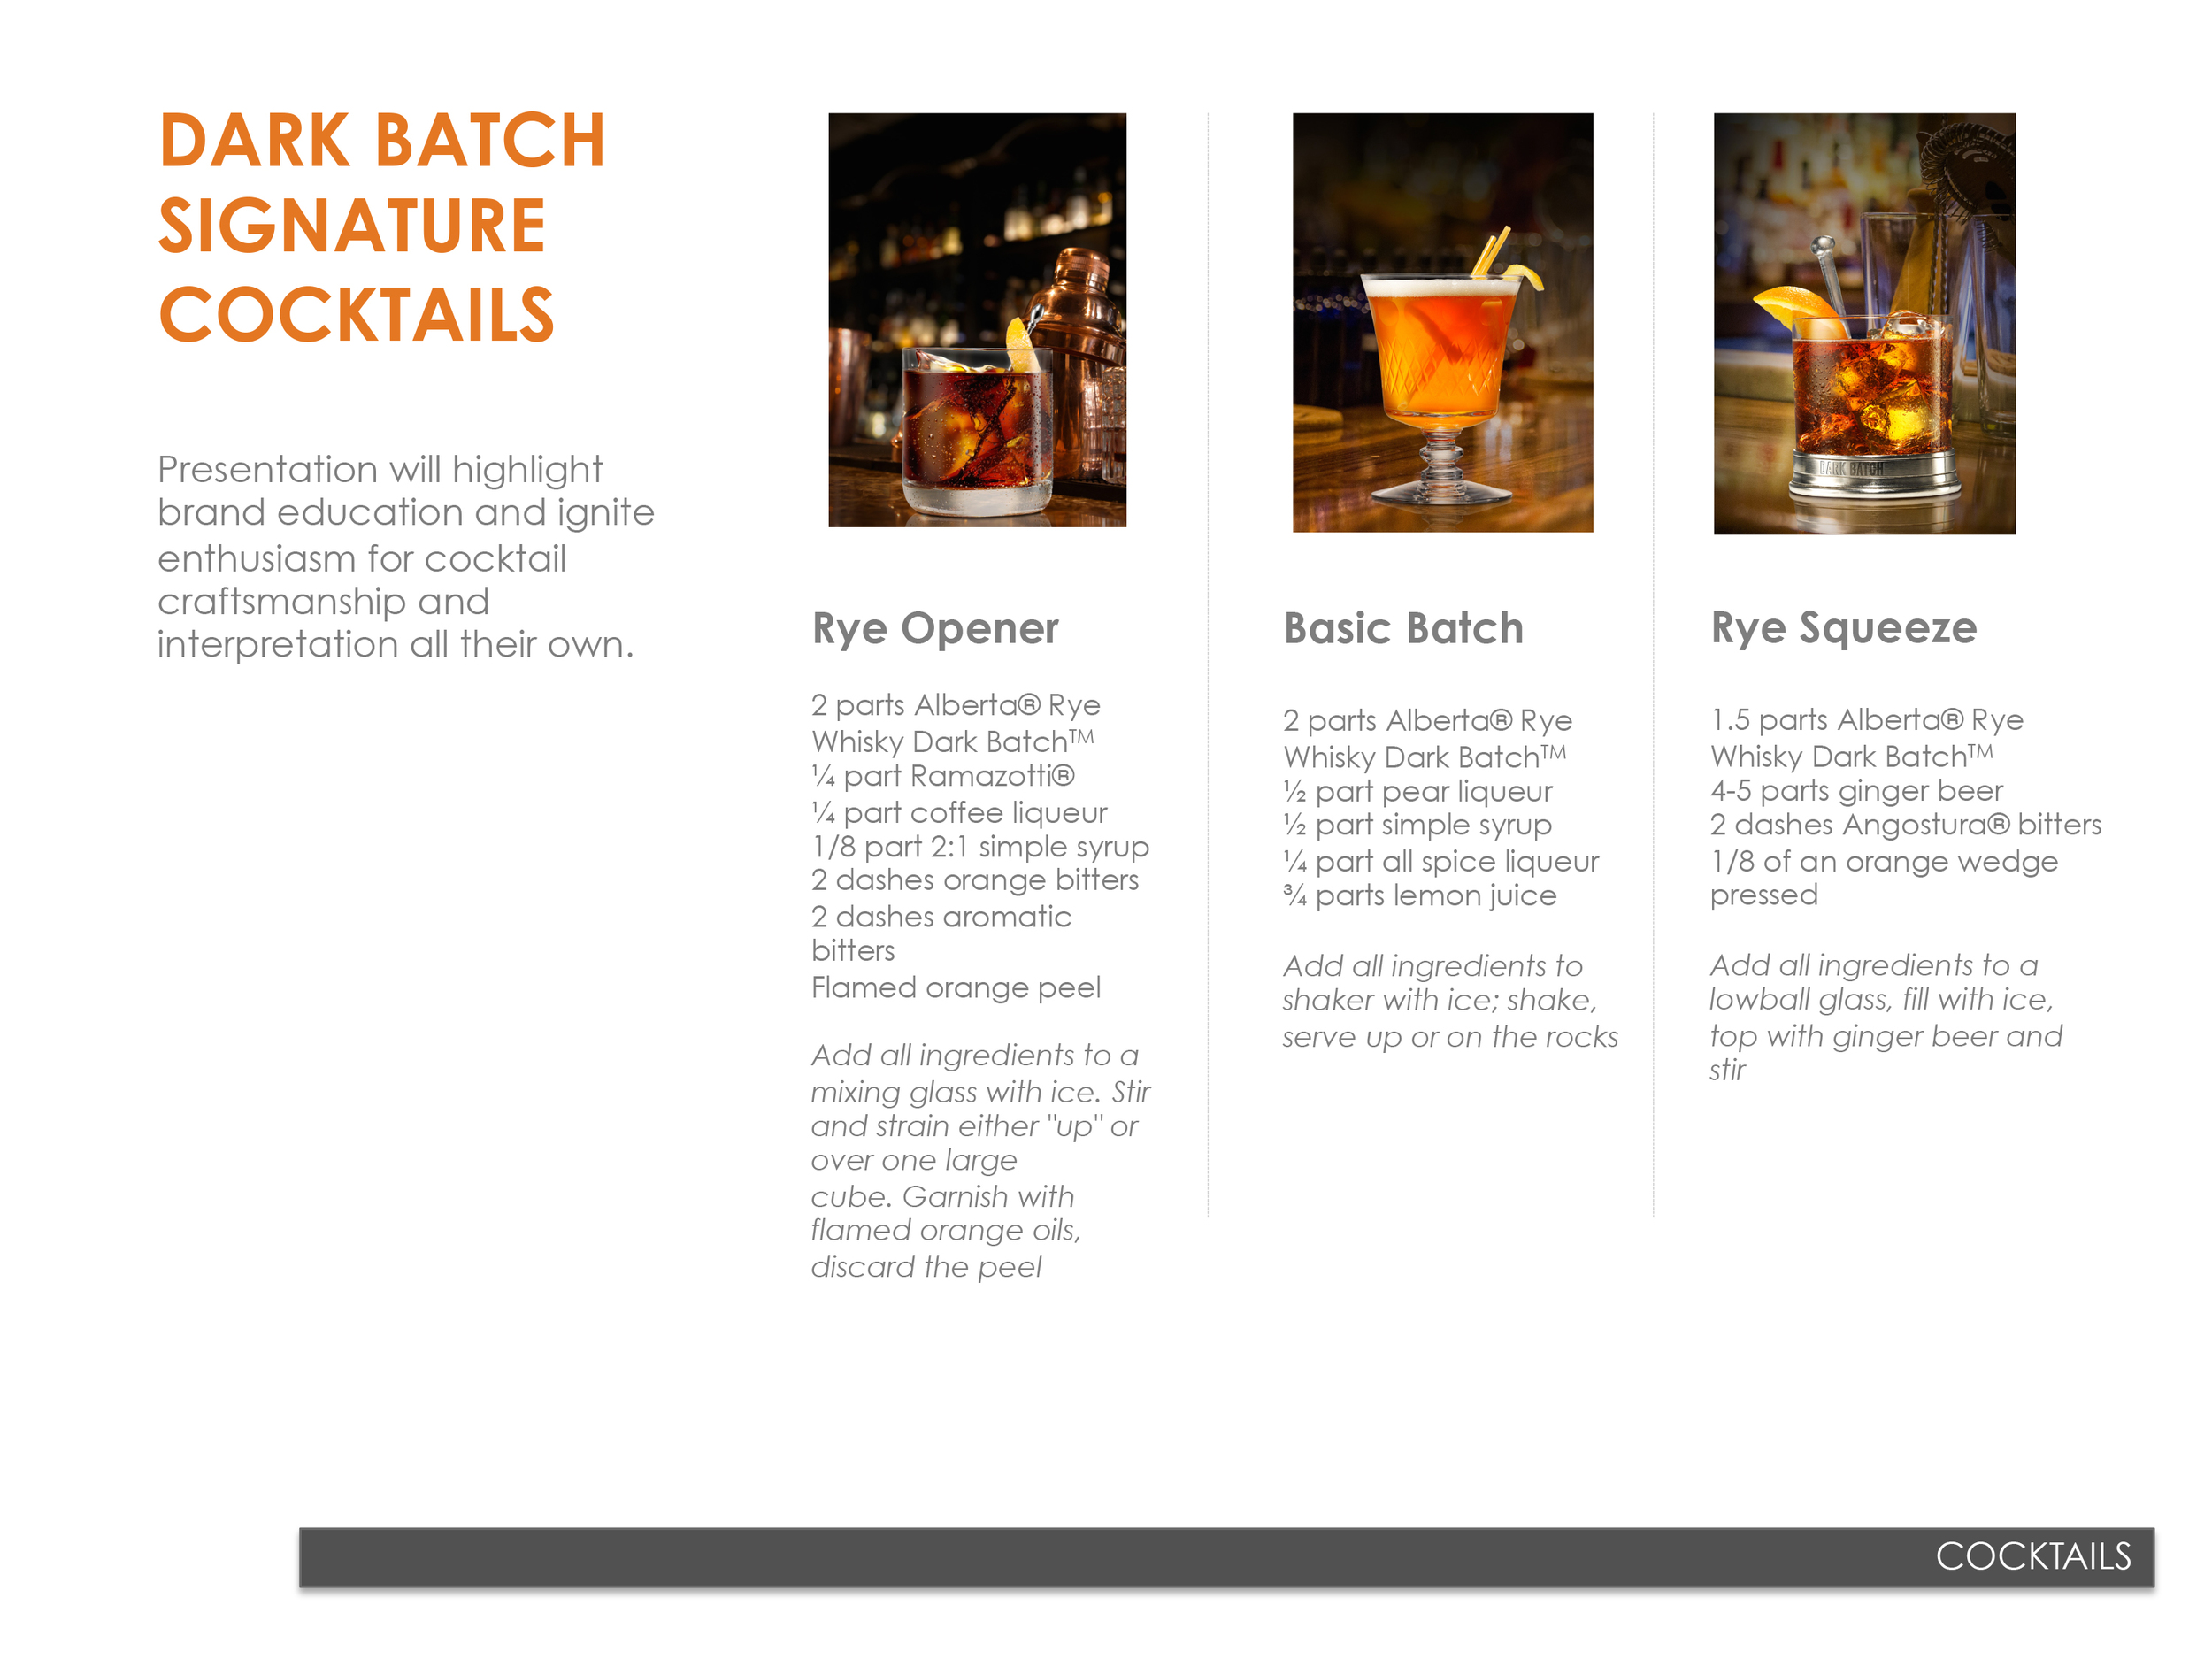 Alberta Rye Dark Batch Activation Guide 4.6-27.jpg